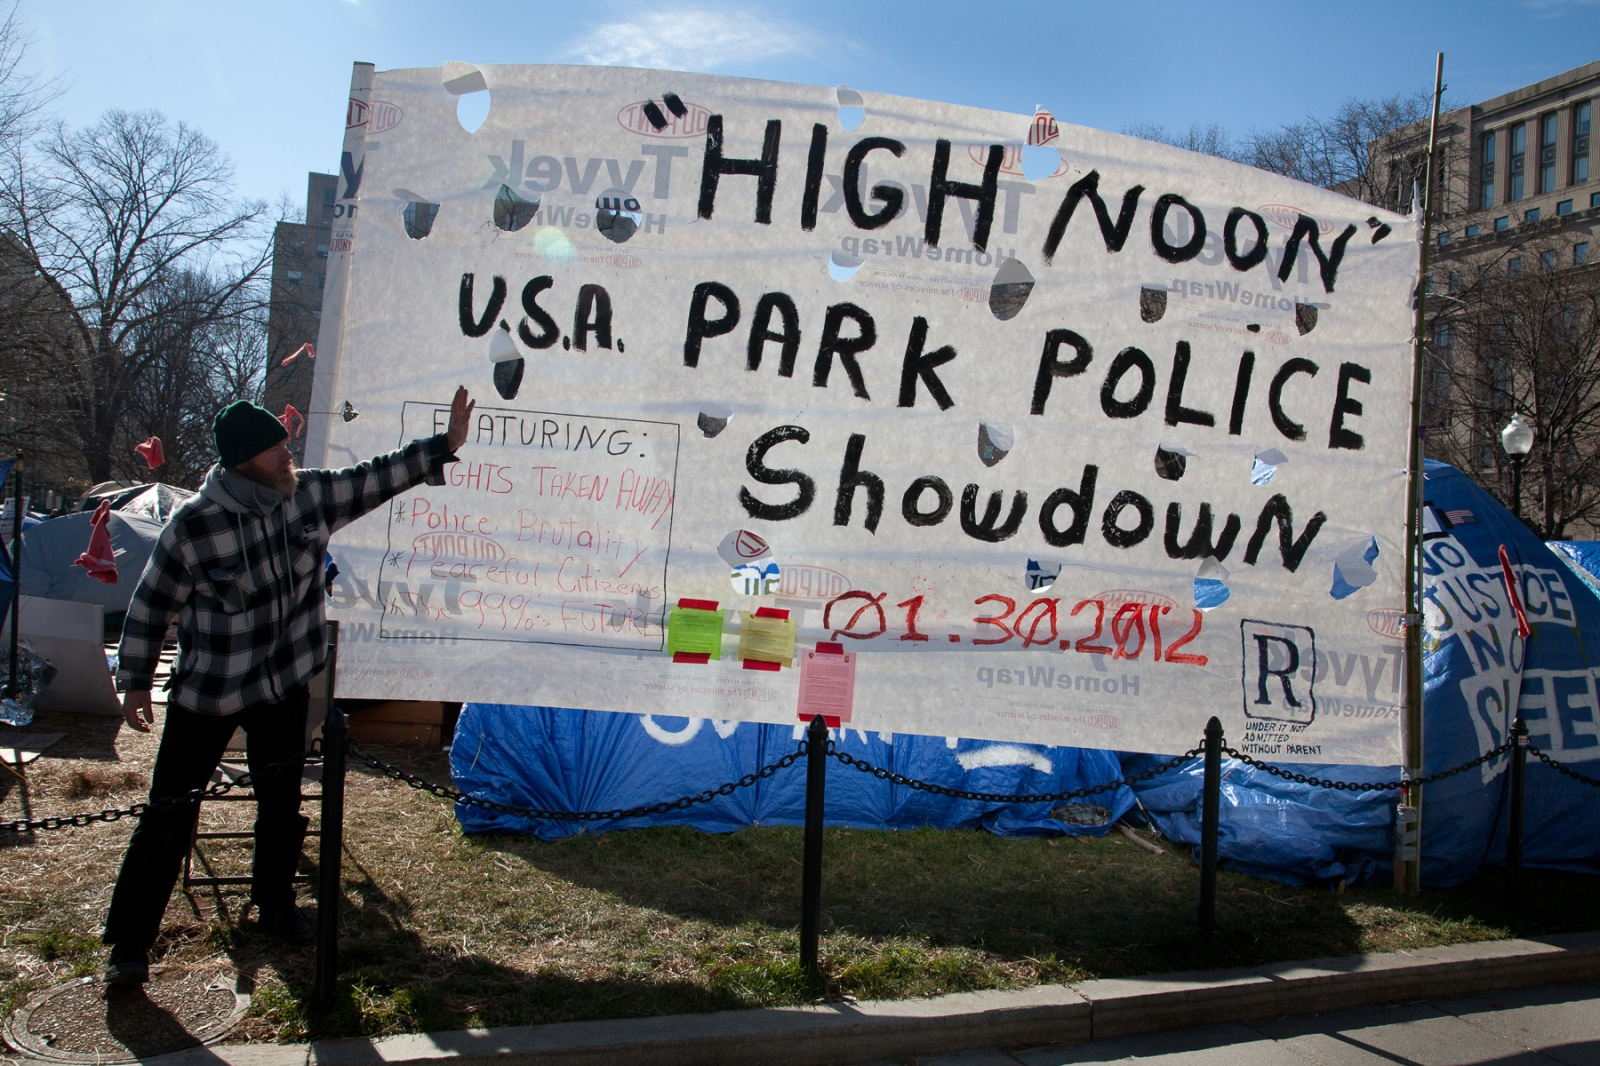 Occupy D.C. expected a confrontation with U.S. Park Police after a Monday deadline passed where protestors were supposed to remove bedding material from their tents.